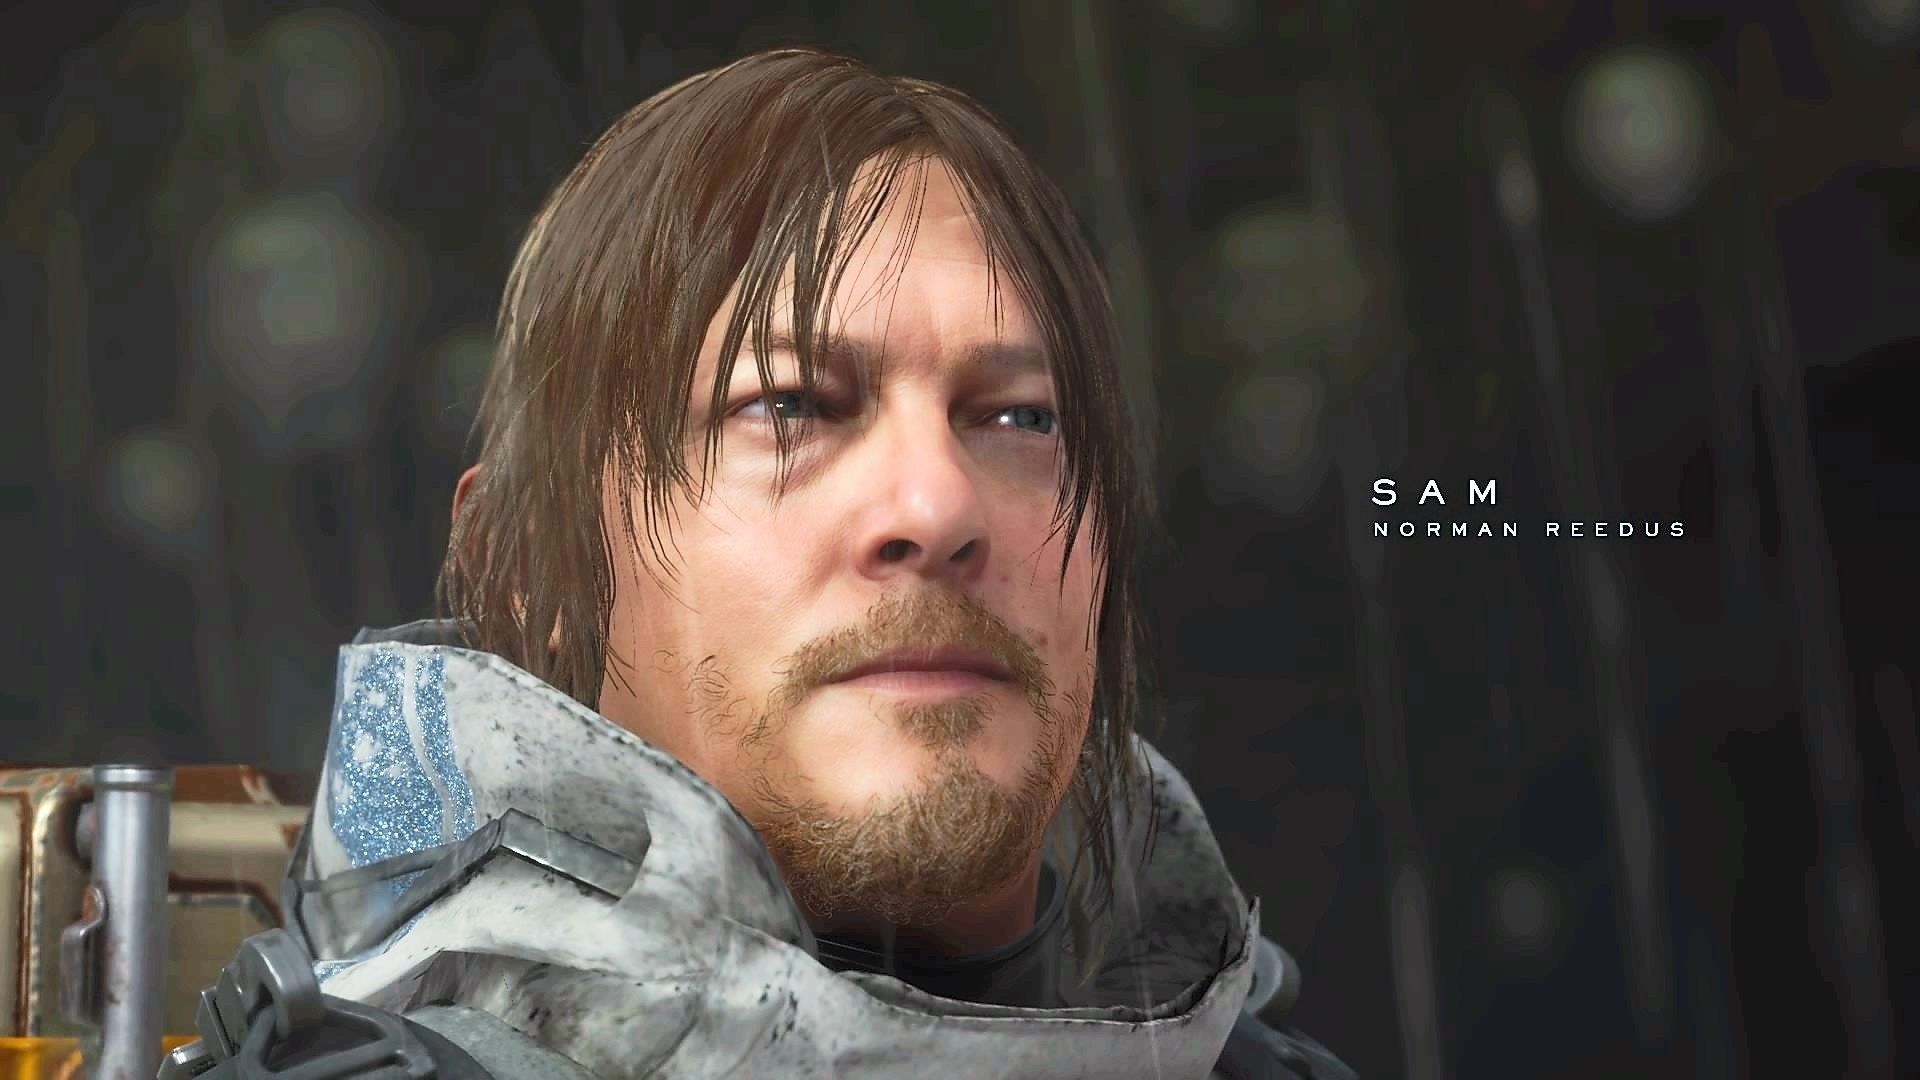 Get used to seeing a lot of Norman Reedus as Sam Porter Bridges in this game.